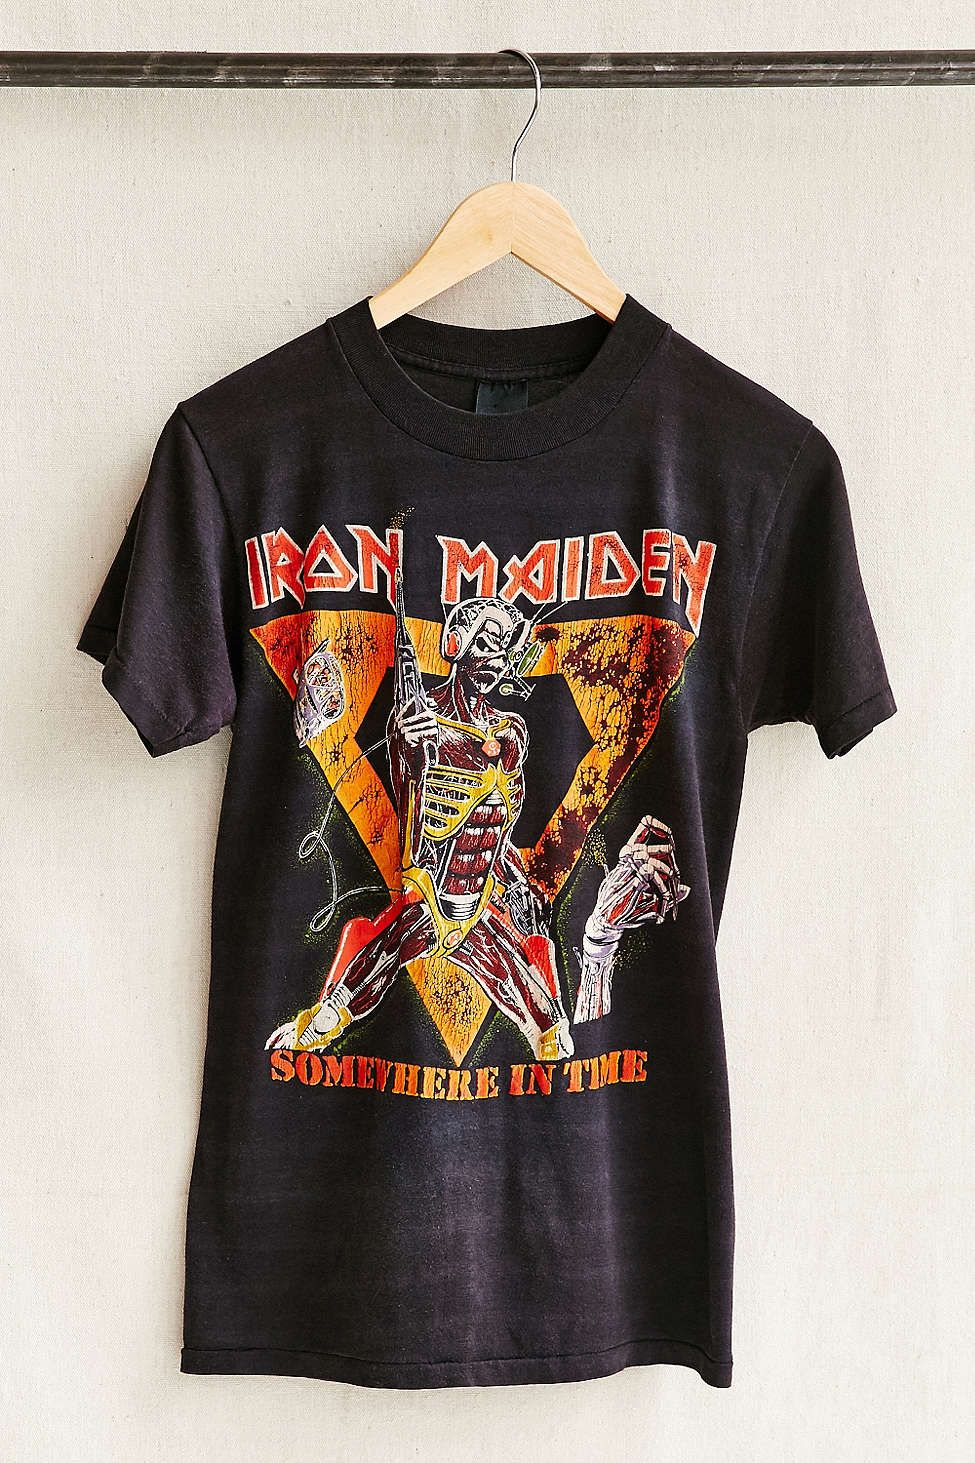 961d2caf Urban Outfitters Grey Vintage Graphic Tee Shirt Size 4 · Vintage Pappy'  Harley Tee Dope Shirts · Vintage Pappy' Harley Tee Dope Shirts · Iron  Maiden T-Shirt